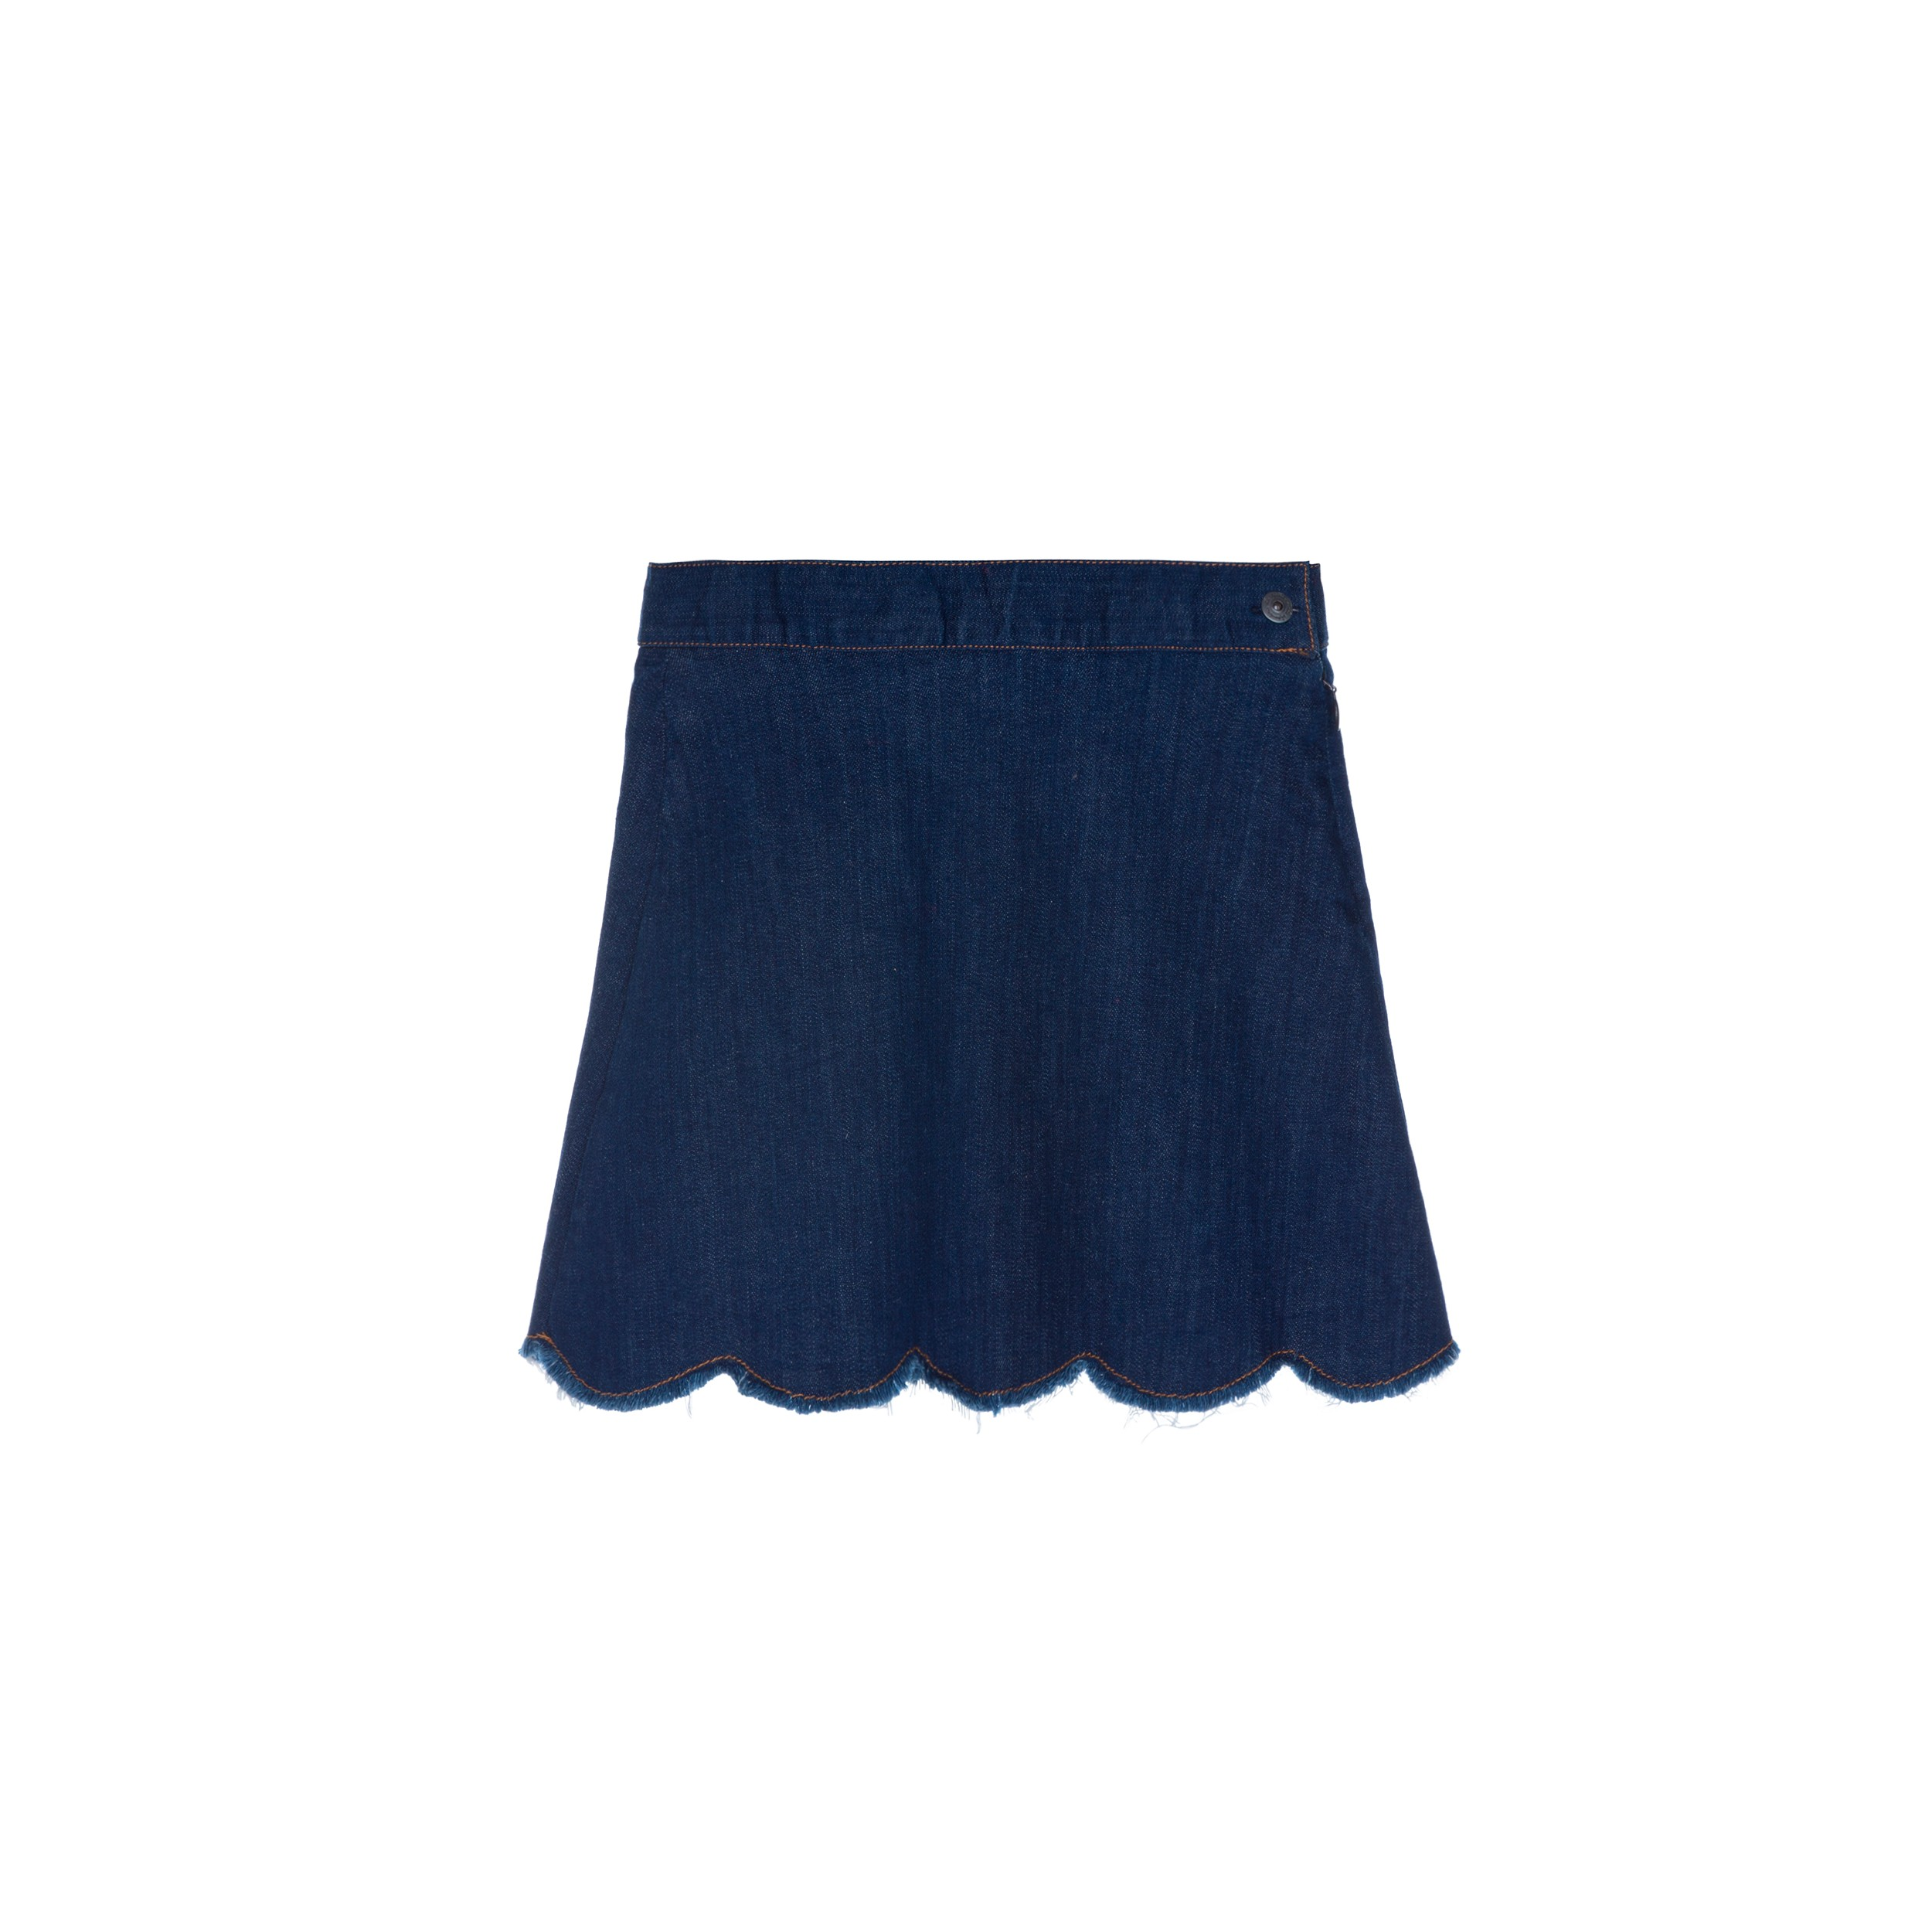 buying cheap sale retailer best service DENIM SKIRT WITH SCALLOPED HEM SKIRTS AND PANTS